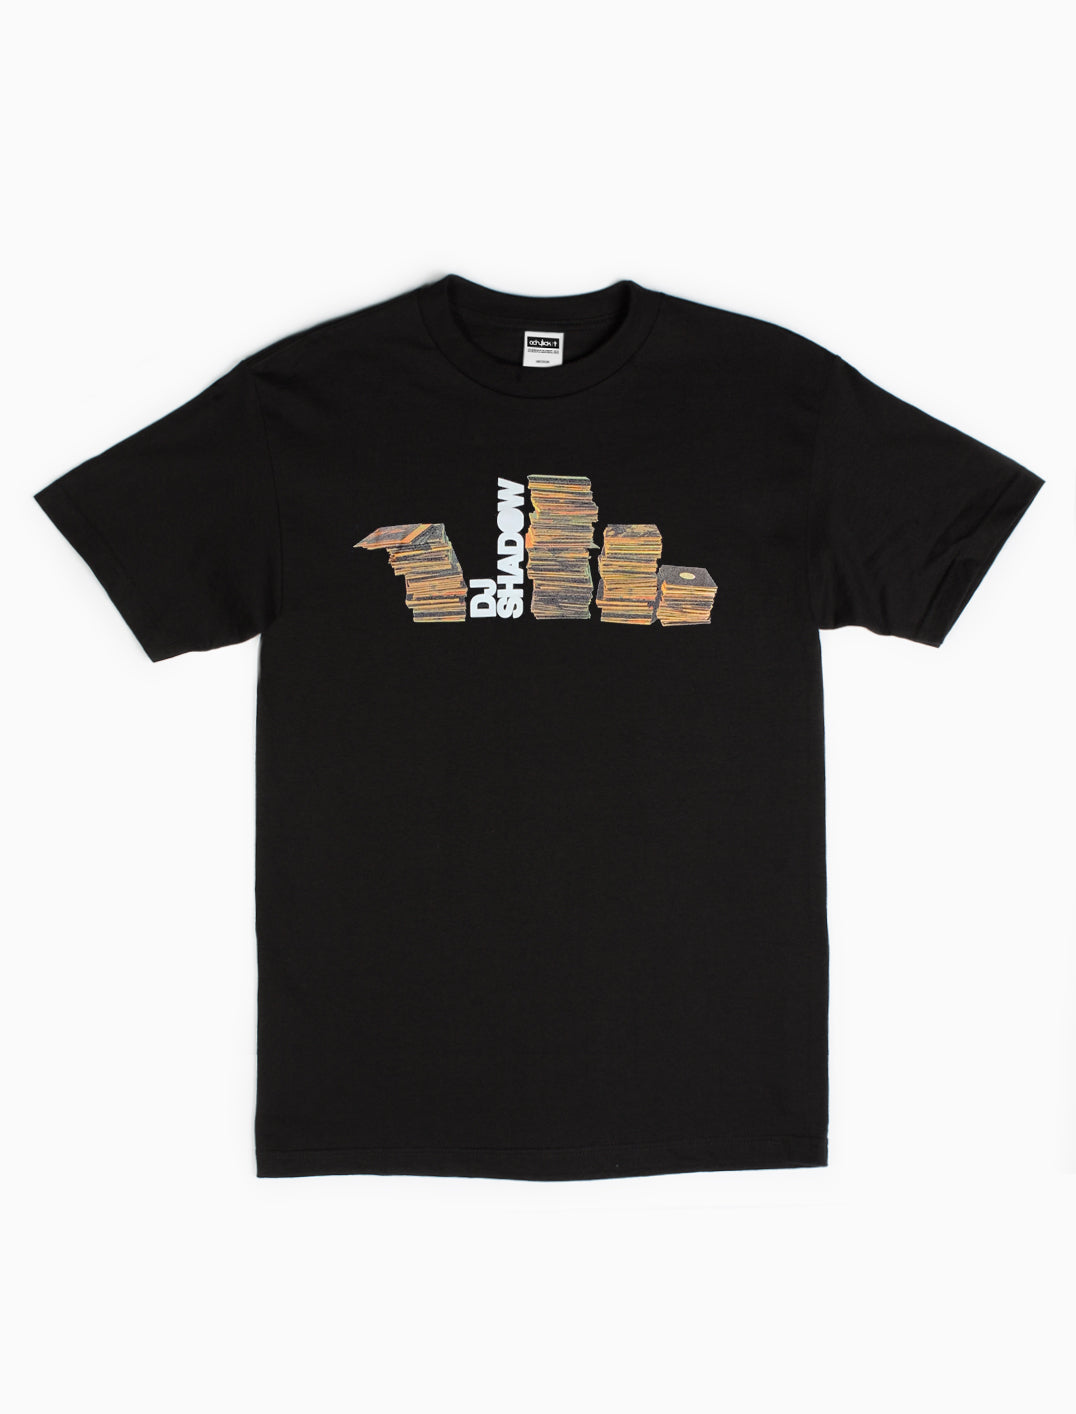 DJ Shadow Records Tee